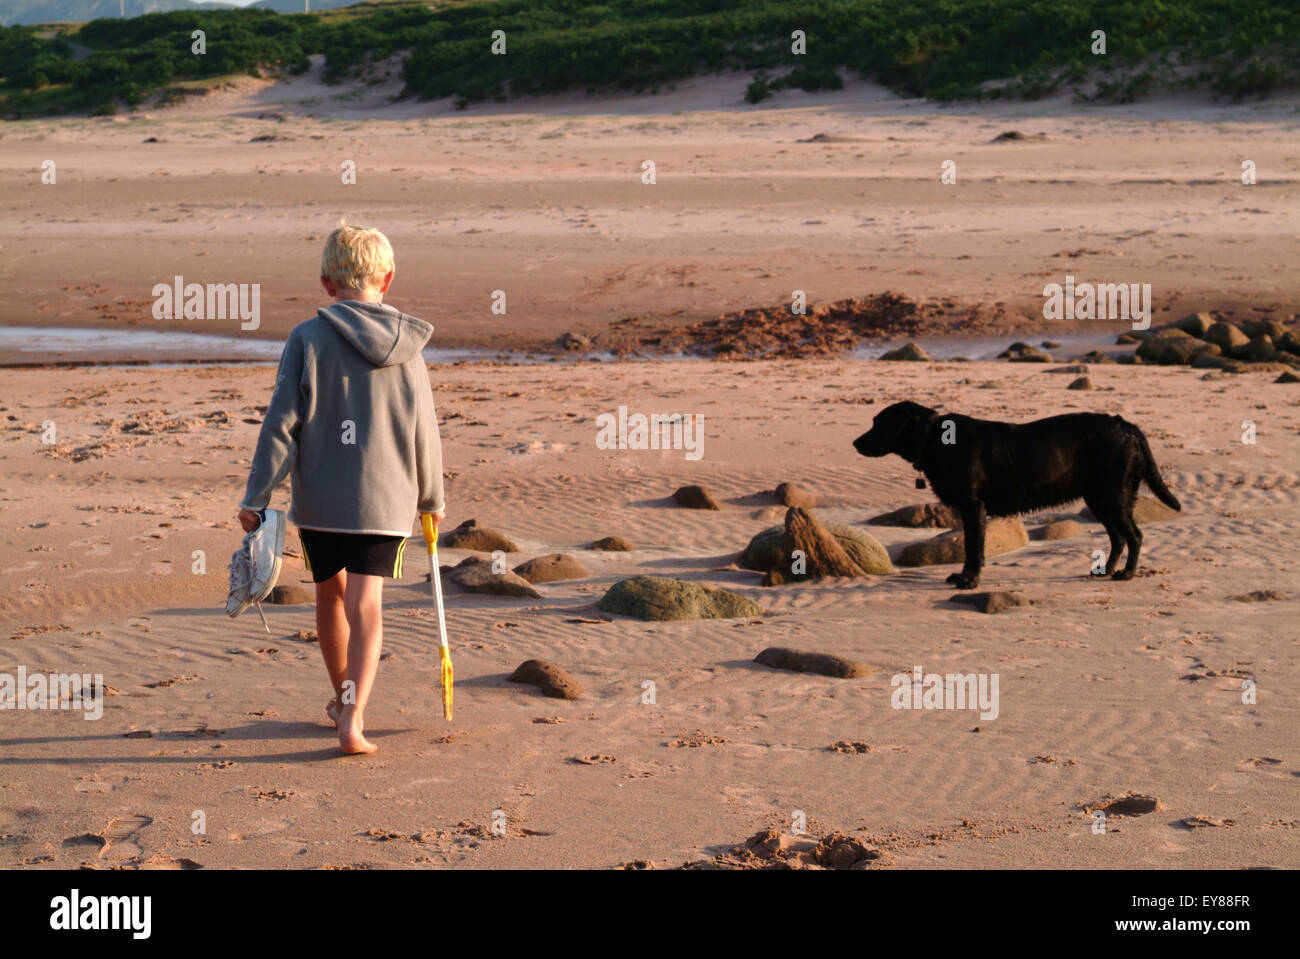 Rear view of a young boy walking alone with his dog on the beach - Stock Image